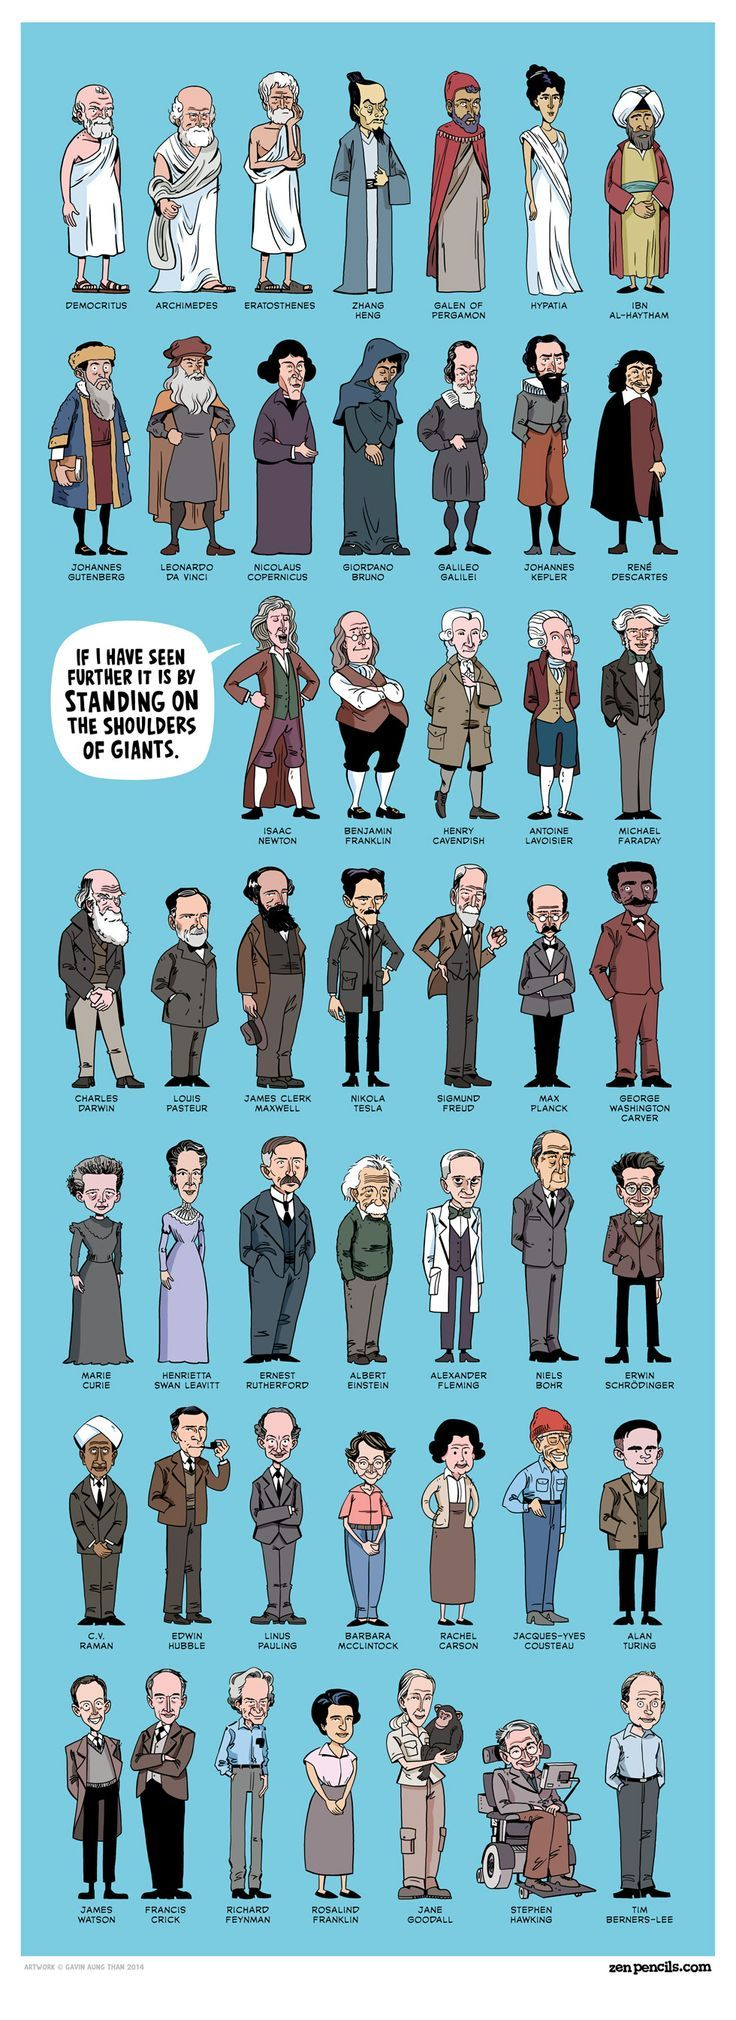 ON THE SHOULDERS OF GIANTS by zenpencils: Science All-Stars! Click through for details about each scientist. #Illustration #Cartoon #Scientists